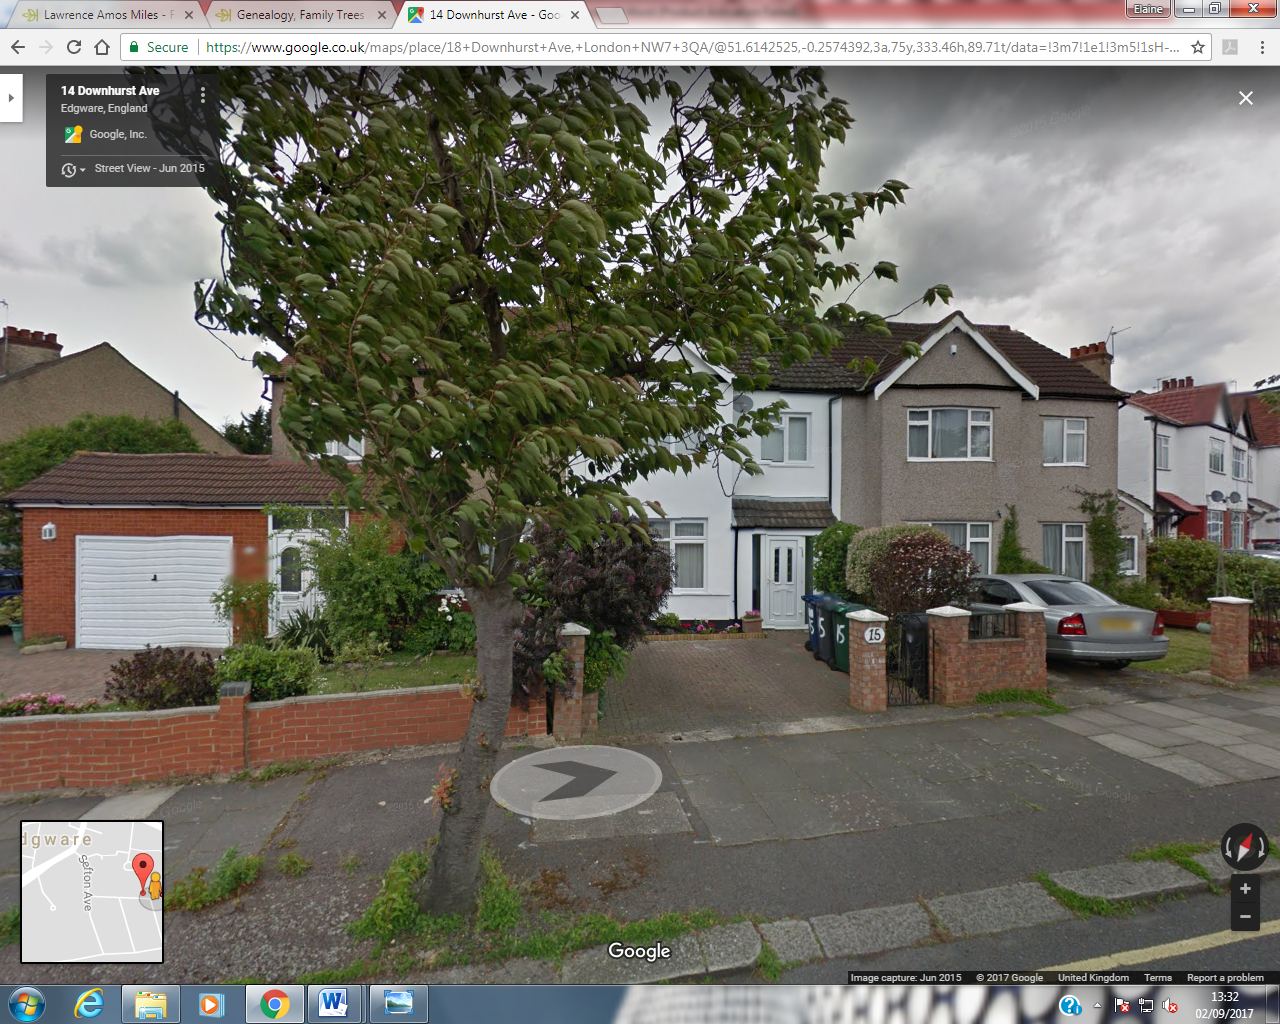 C:\Users\Main user\Pictures\Dadaji\16, Downhurst Avenue.png